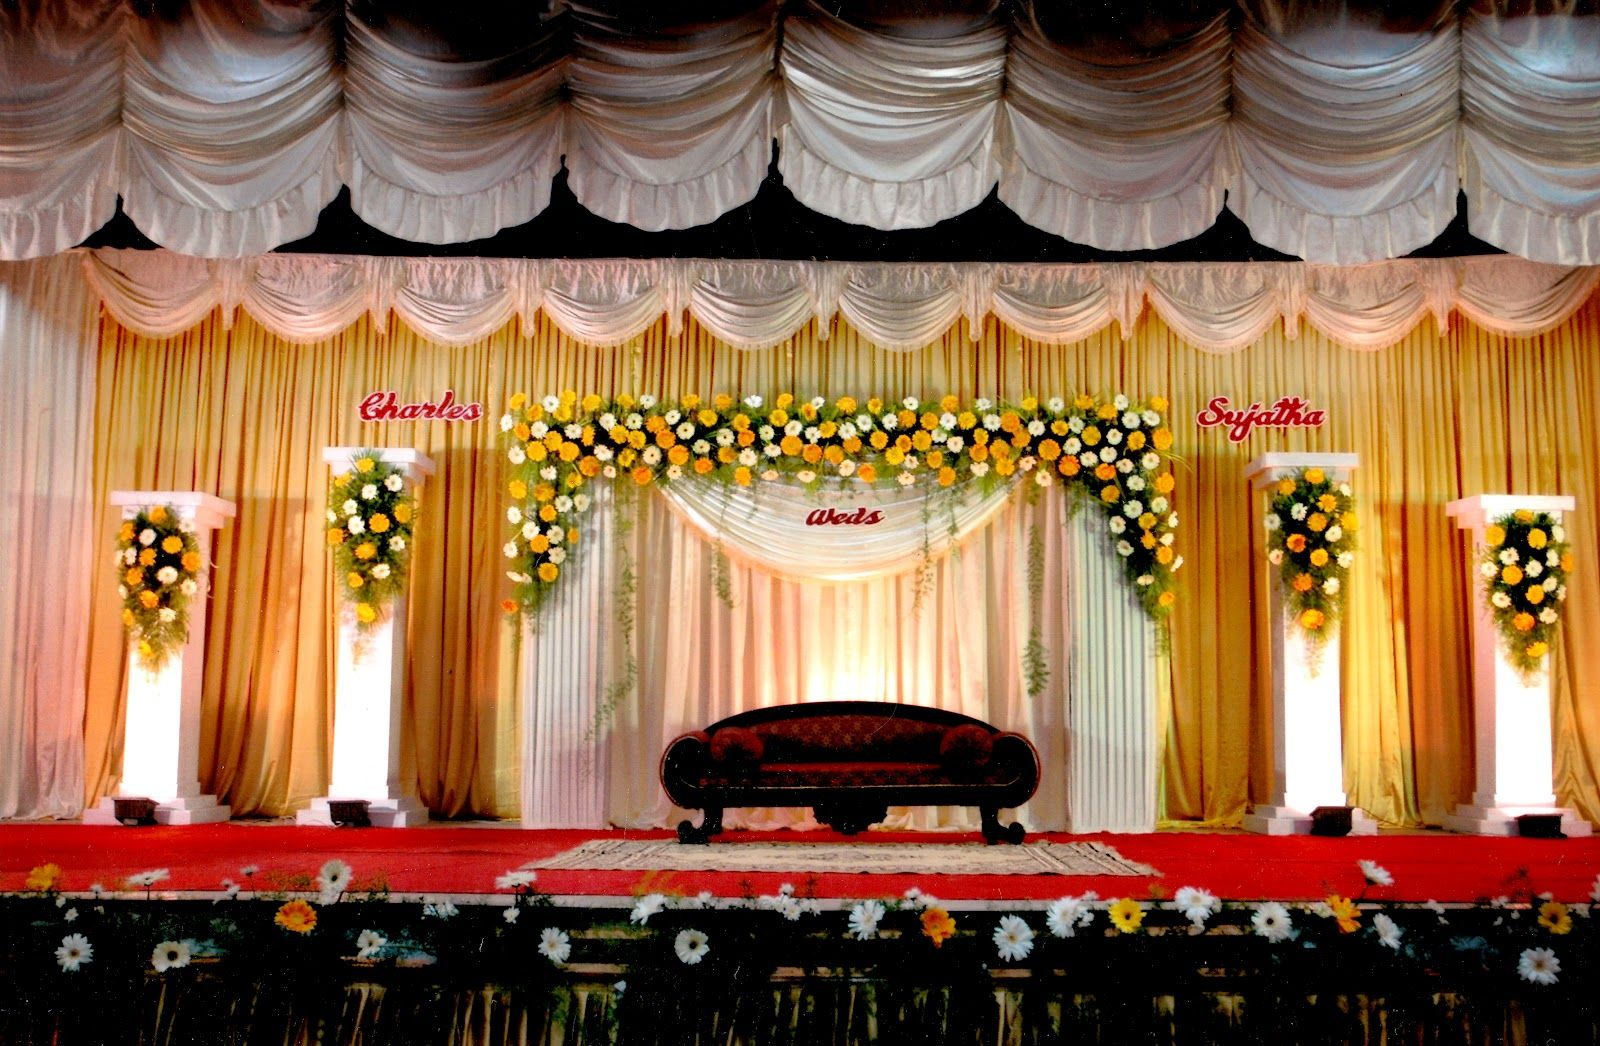 Weddings decor in india google search projects to try weddings decor in india google search amipublicfo Gallery